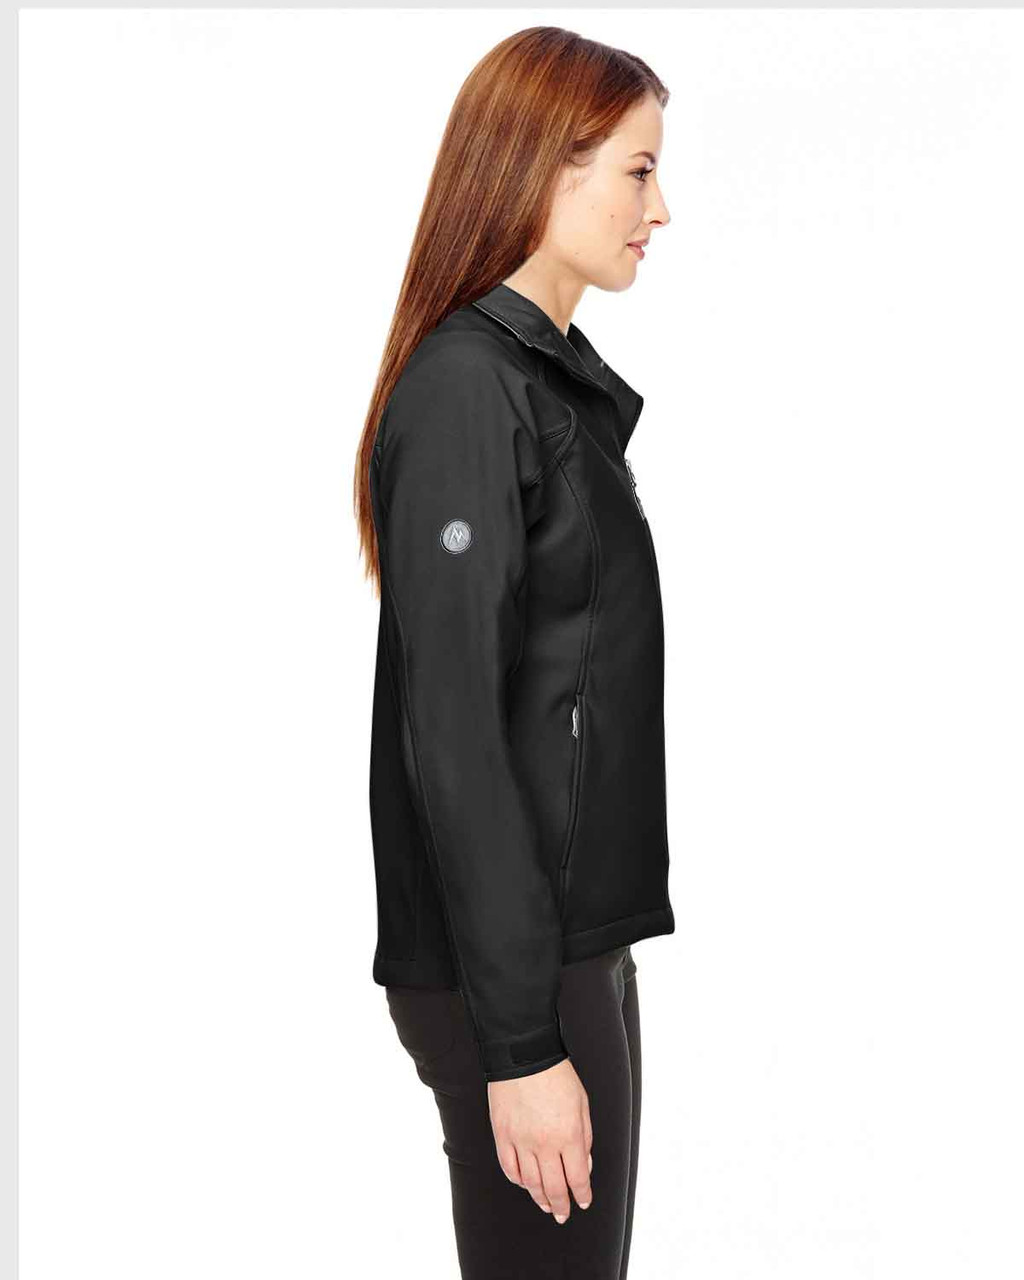 Black - Logo, 85000 Marmot Ladies' Gravity Jacket | BlankClothing.ca